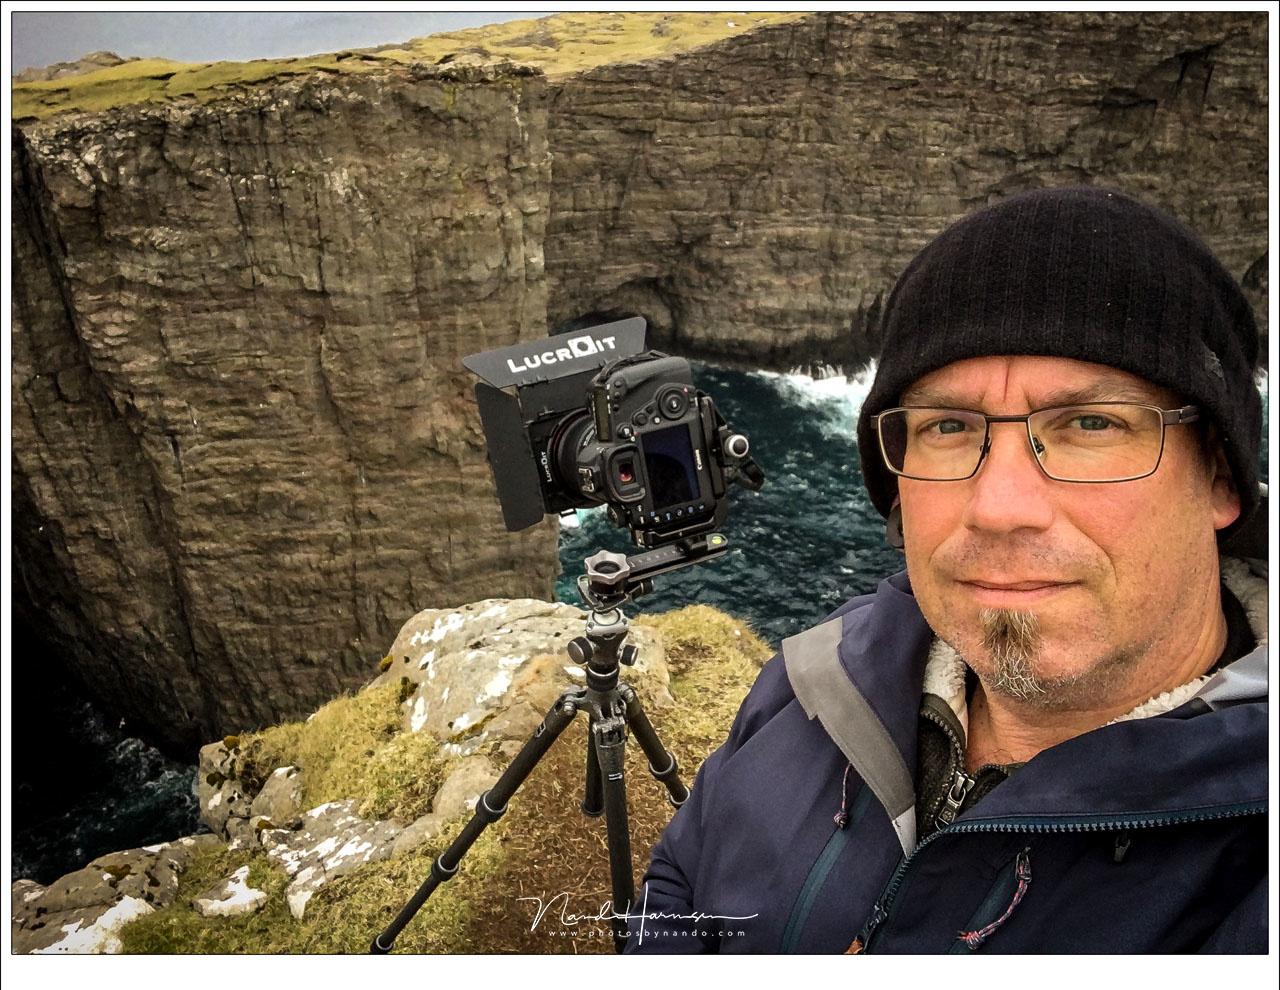 One of the rare selfies I made, while photographing an amazing landscape from tripod. It is my way of enjoying the surroundings and eventually take the photo I like. Or more than one, of course.